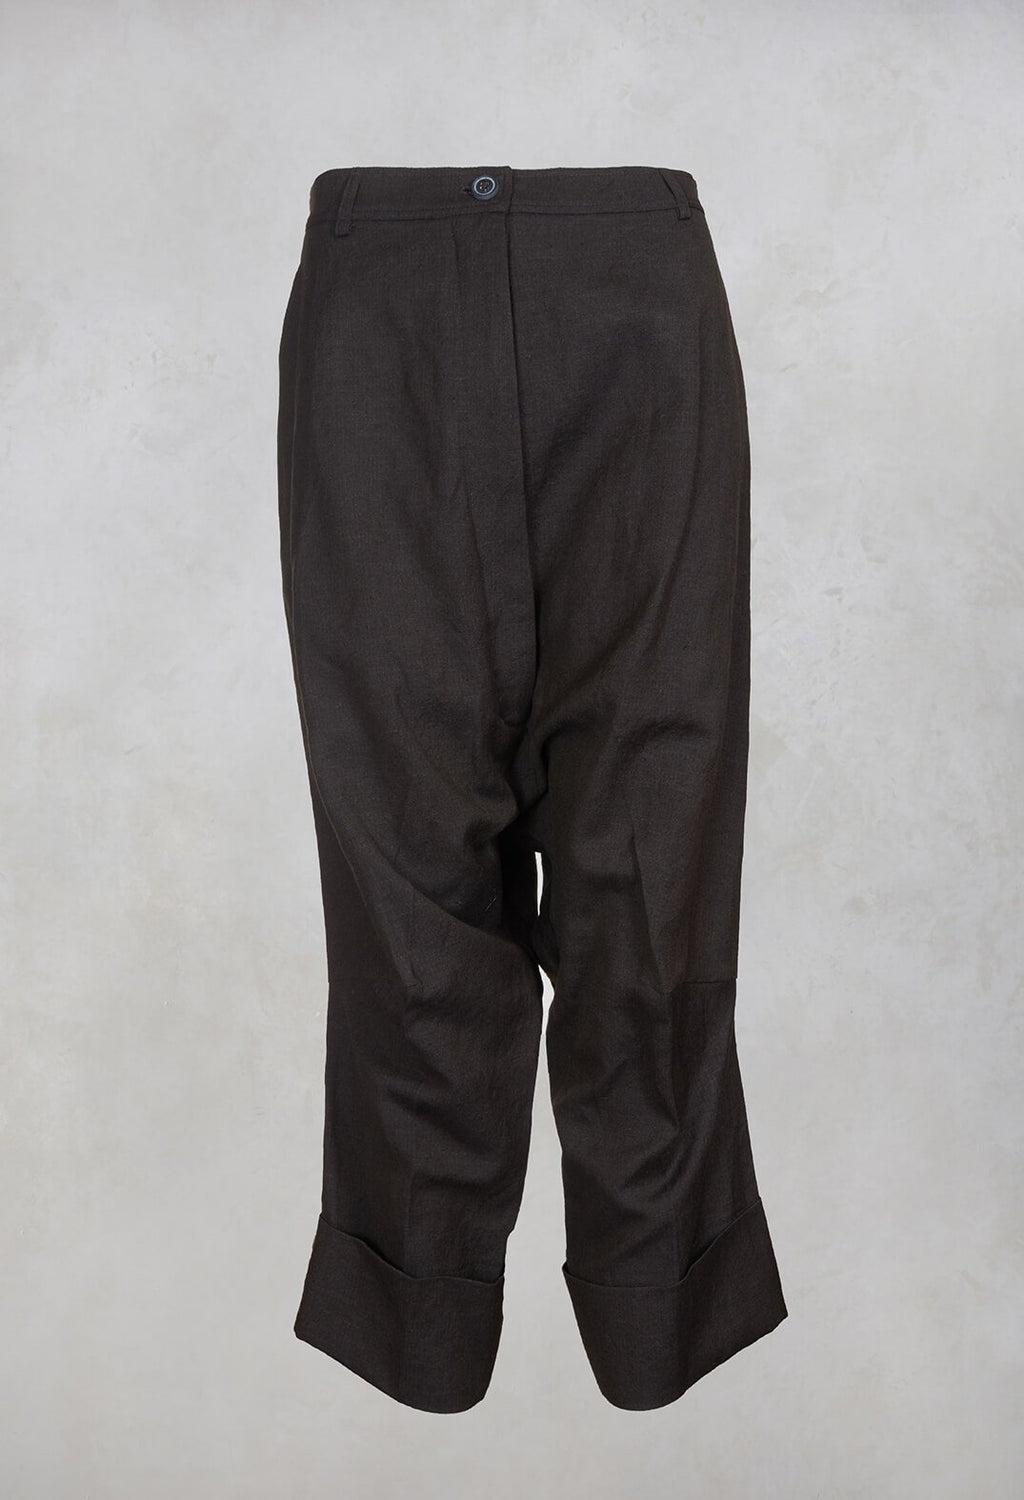 Drop Crotch Trousers in Dark Brown